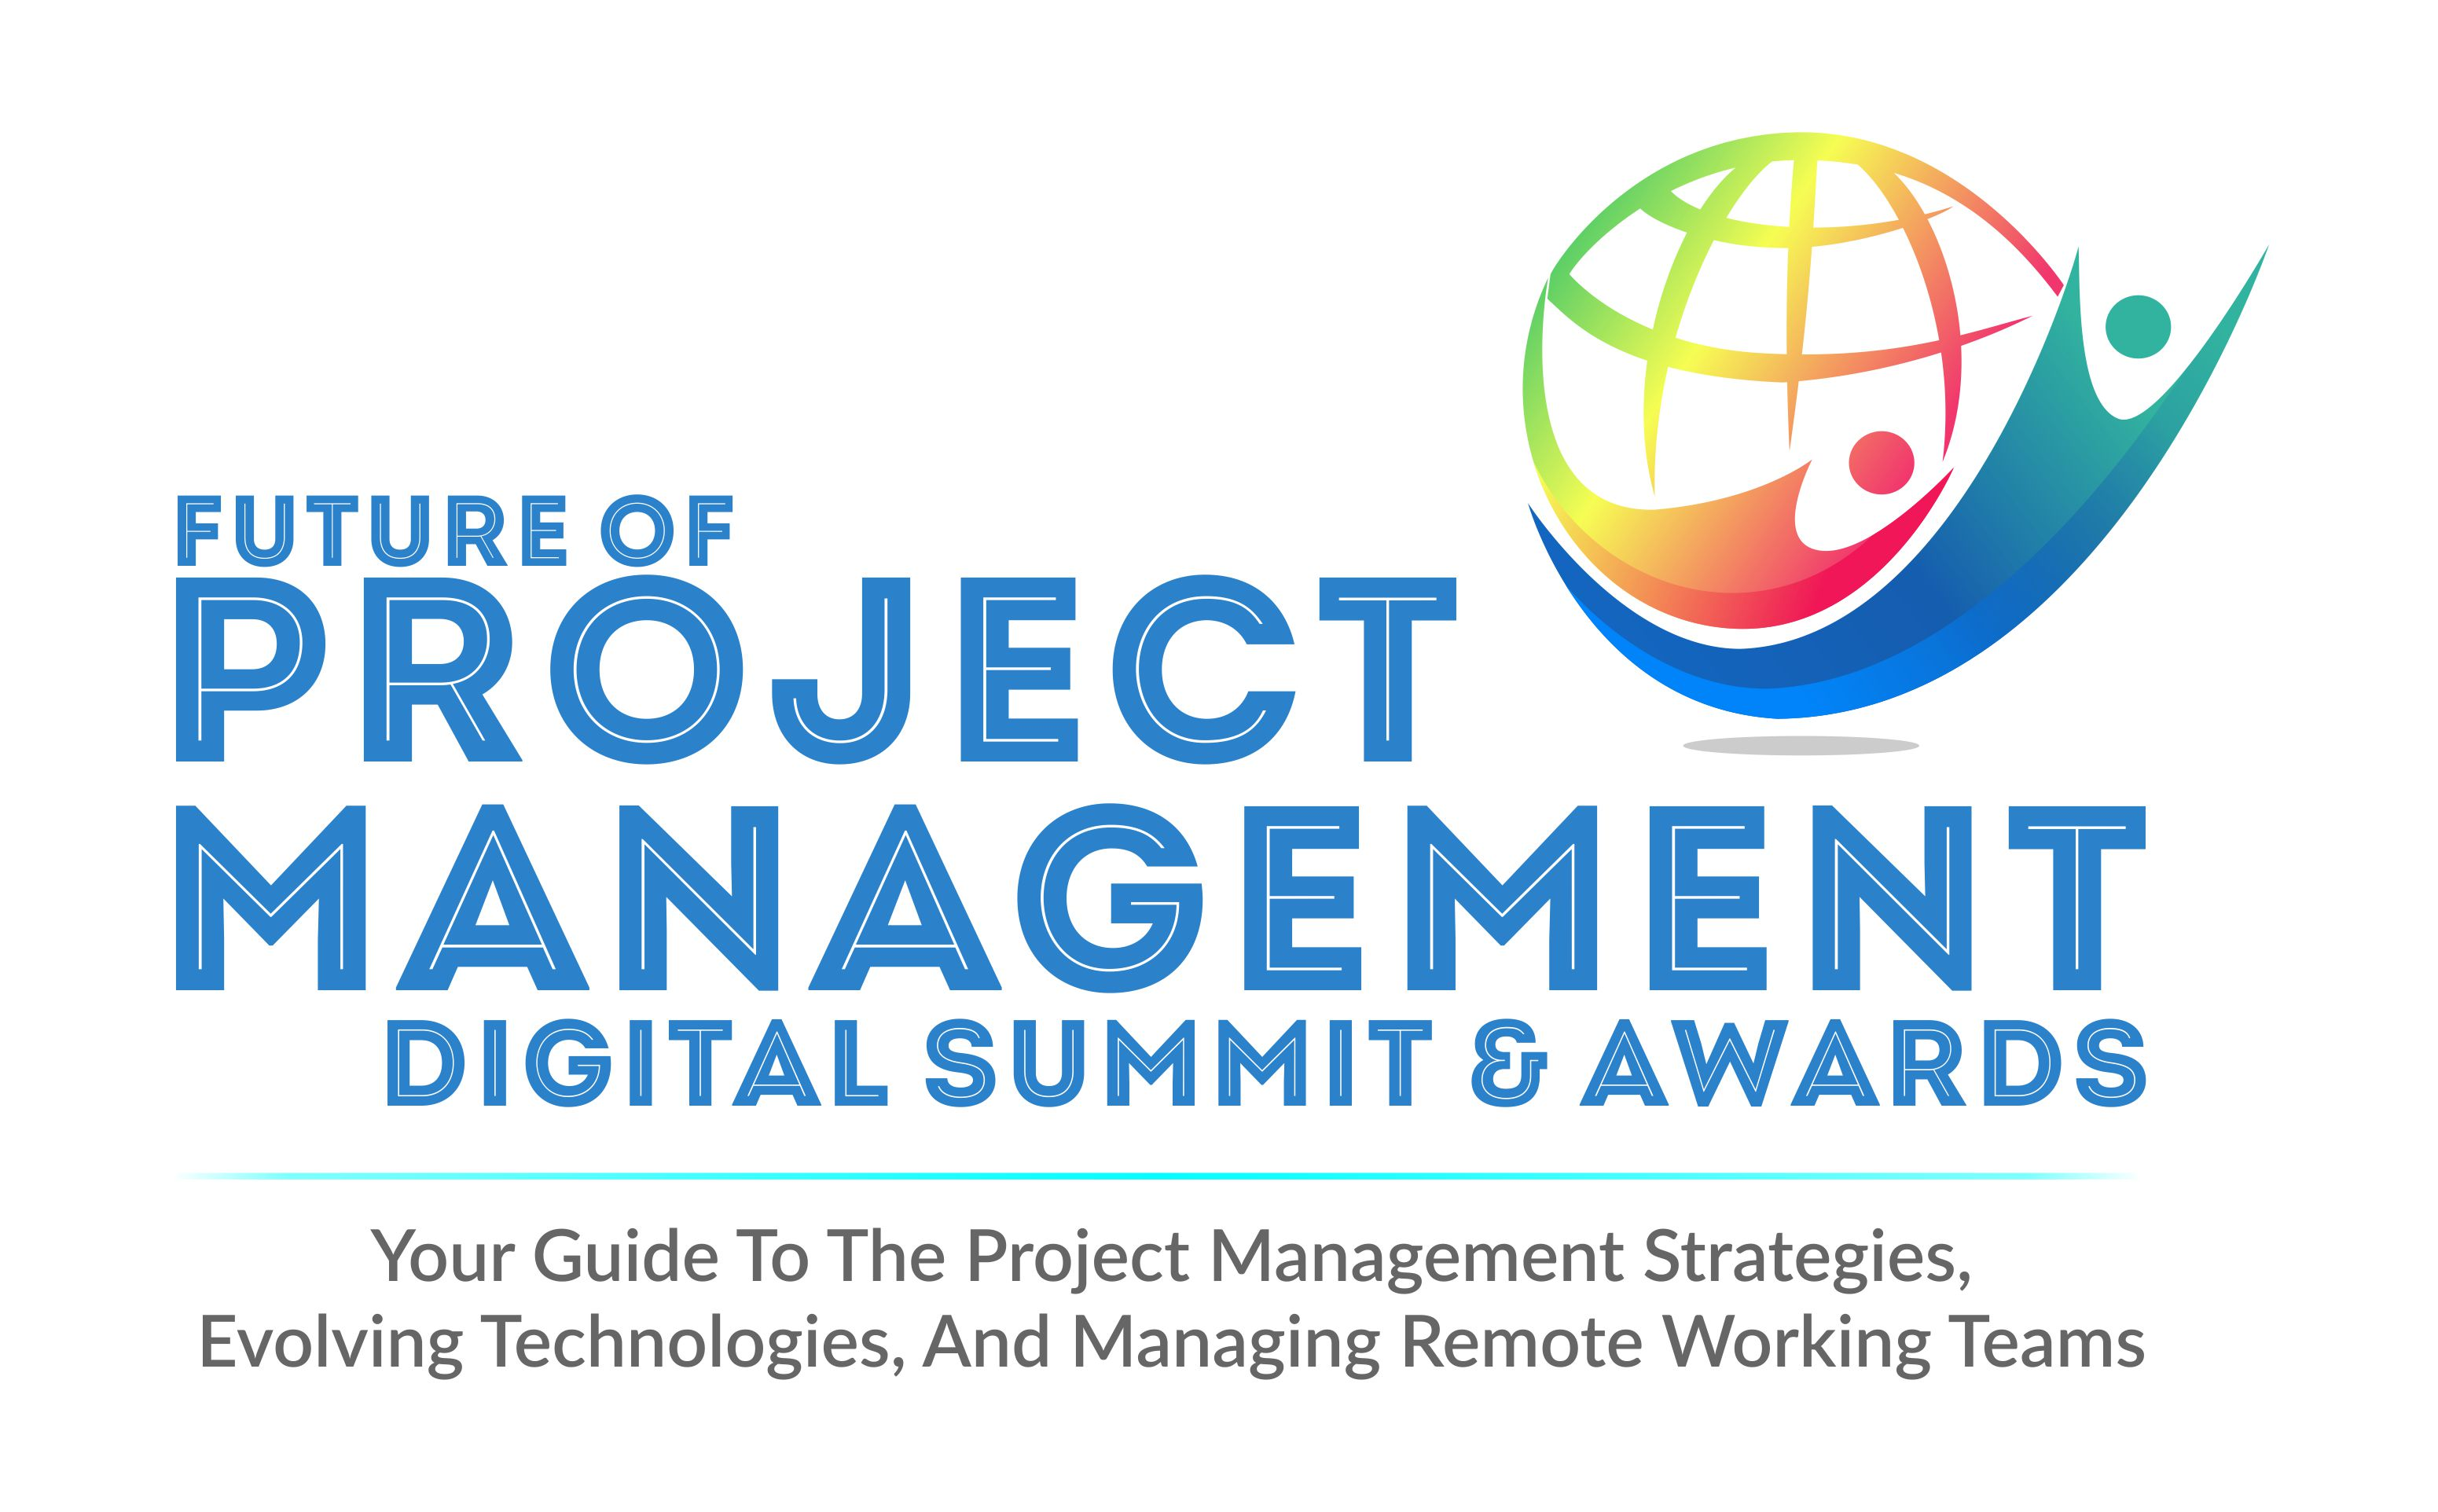 Future of Project Management Digital Masterclass and Awards